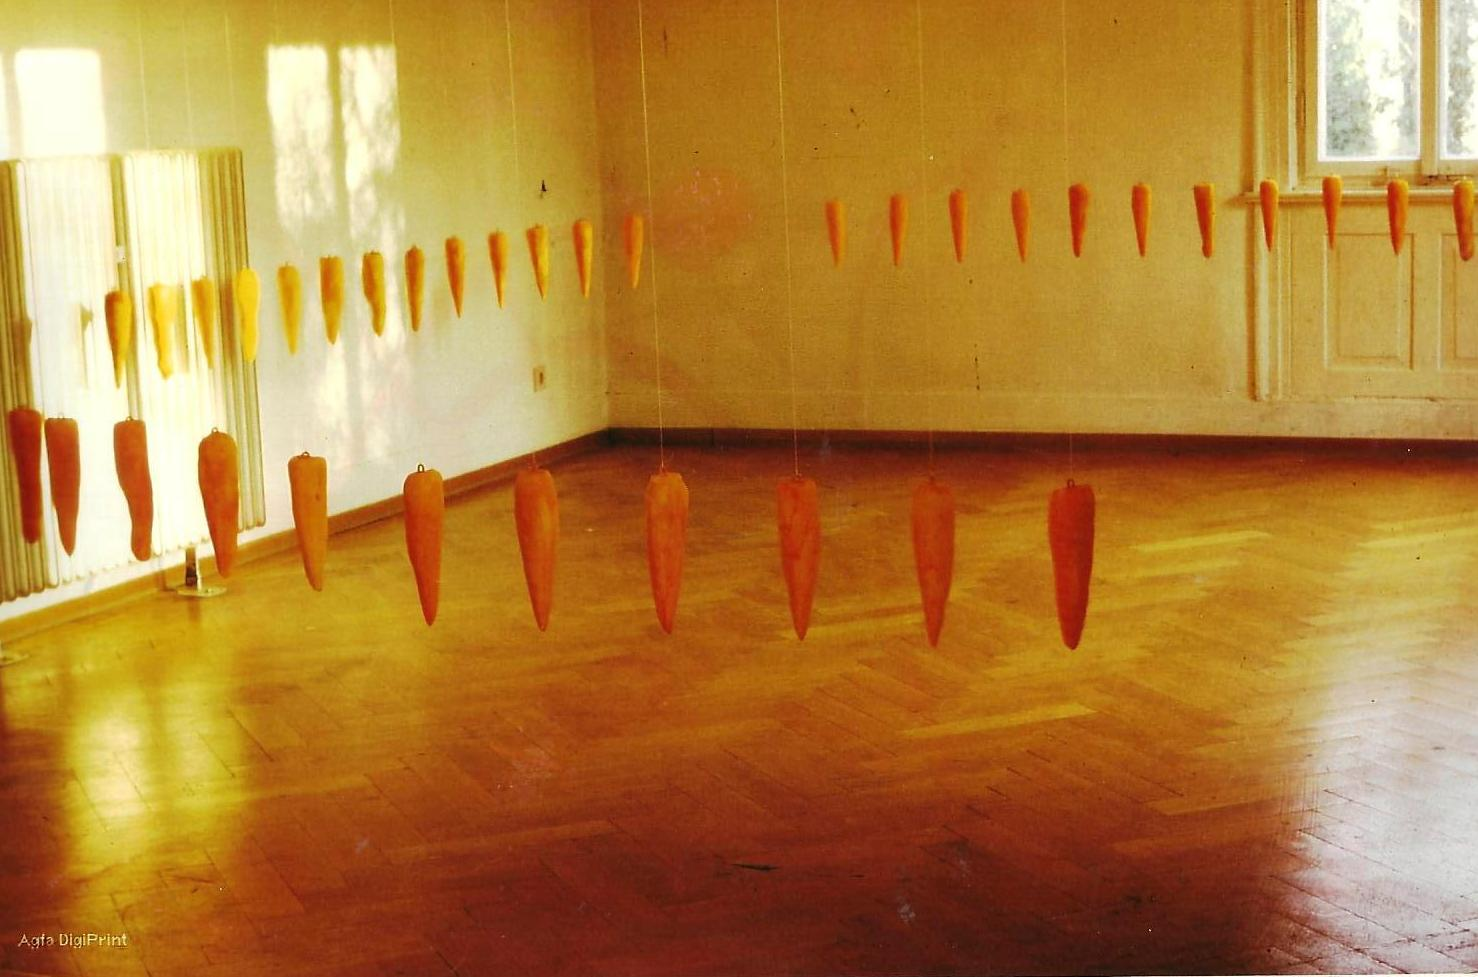 Möhreninstallation 1993